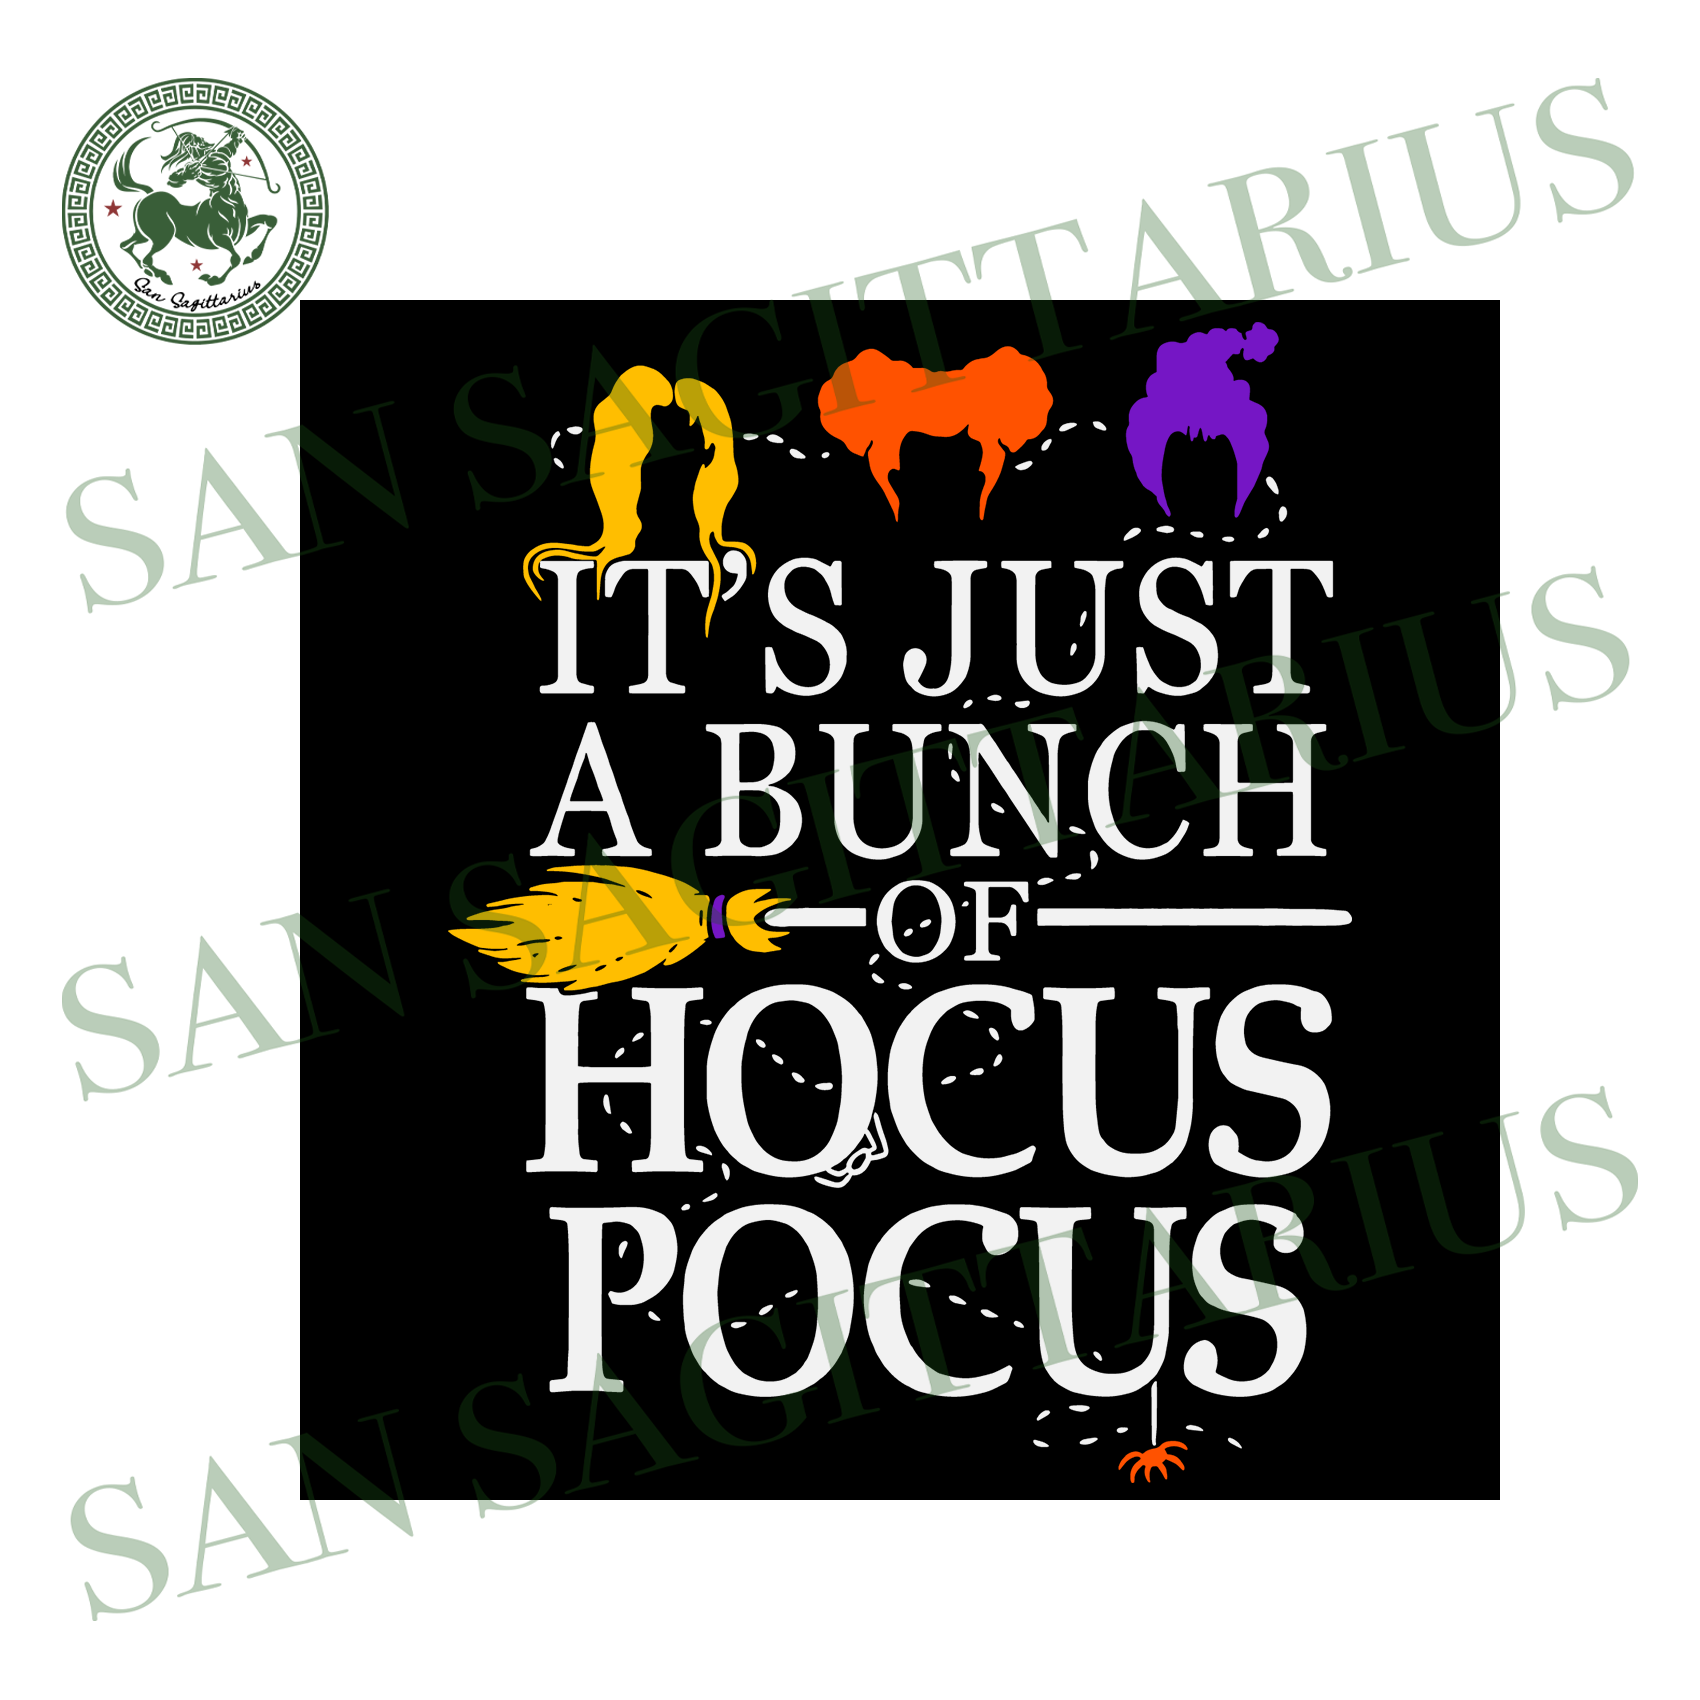 It's Just a Bunch of Hocus Pocus SVG, Sanderson Sisters SVG,Hocus Pocus SVG, Sanderson Svg,Sanderson Sisters Shirt,Halloween Shirt,Halloween Gift